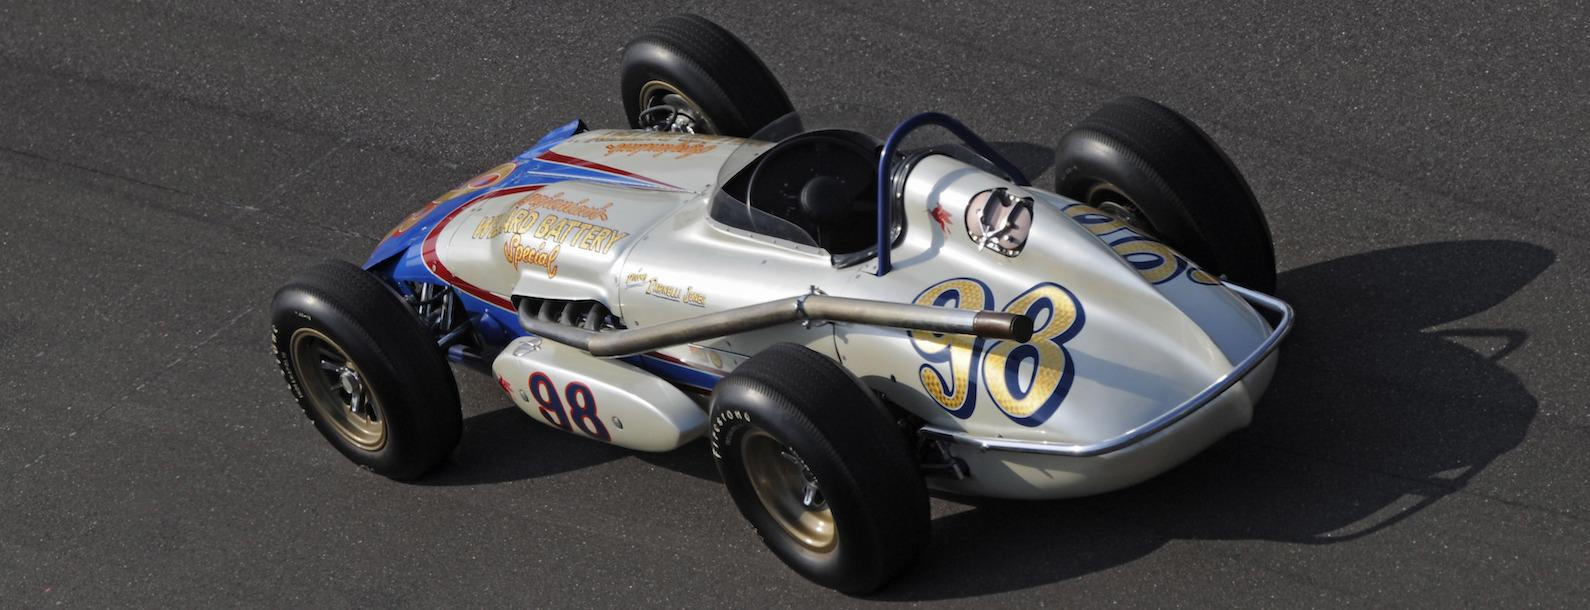 Indy 500 roadsters to be celebrated at 2018 Legends Day